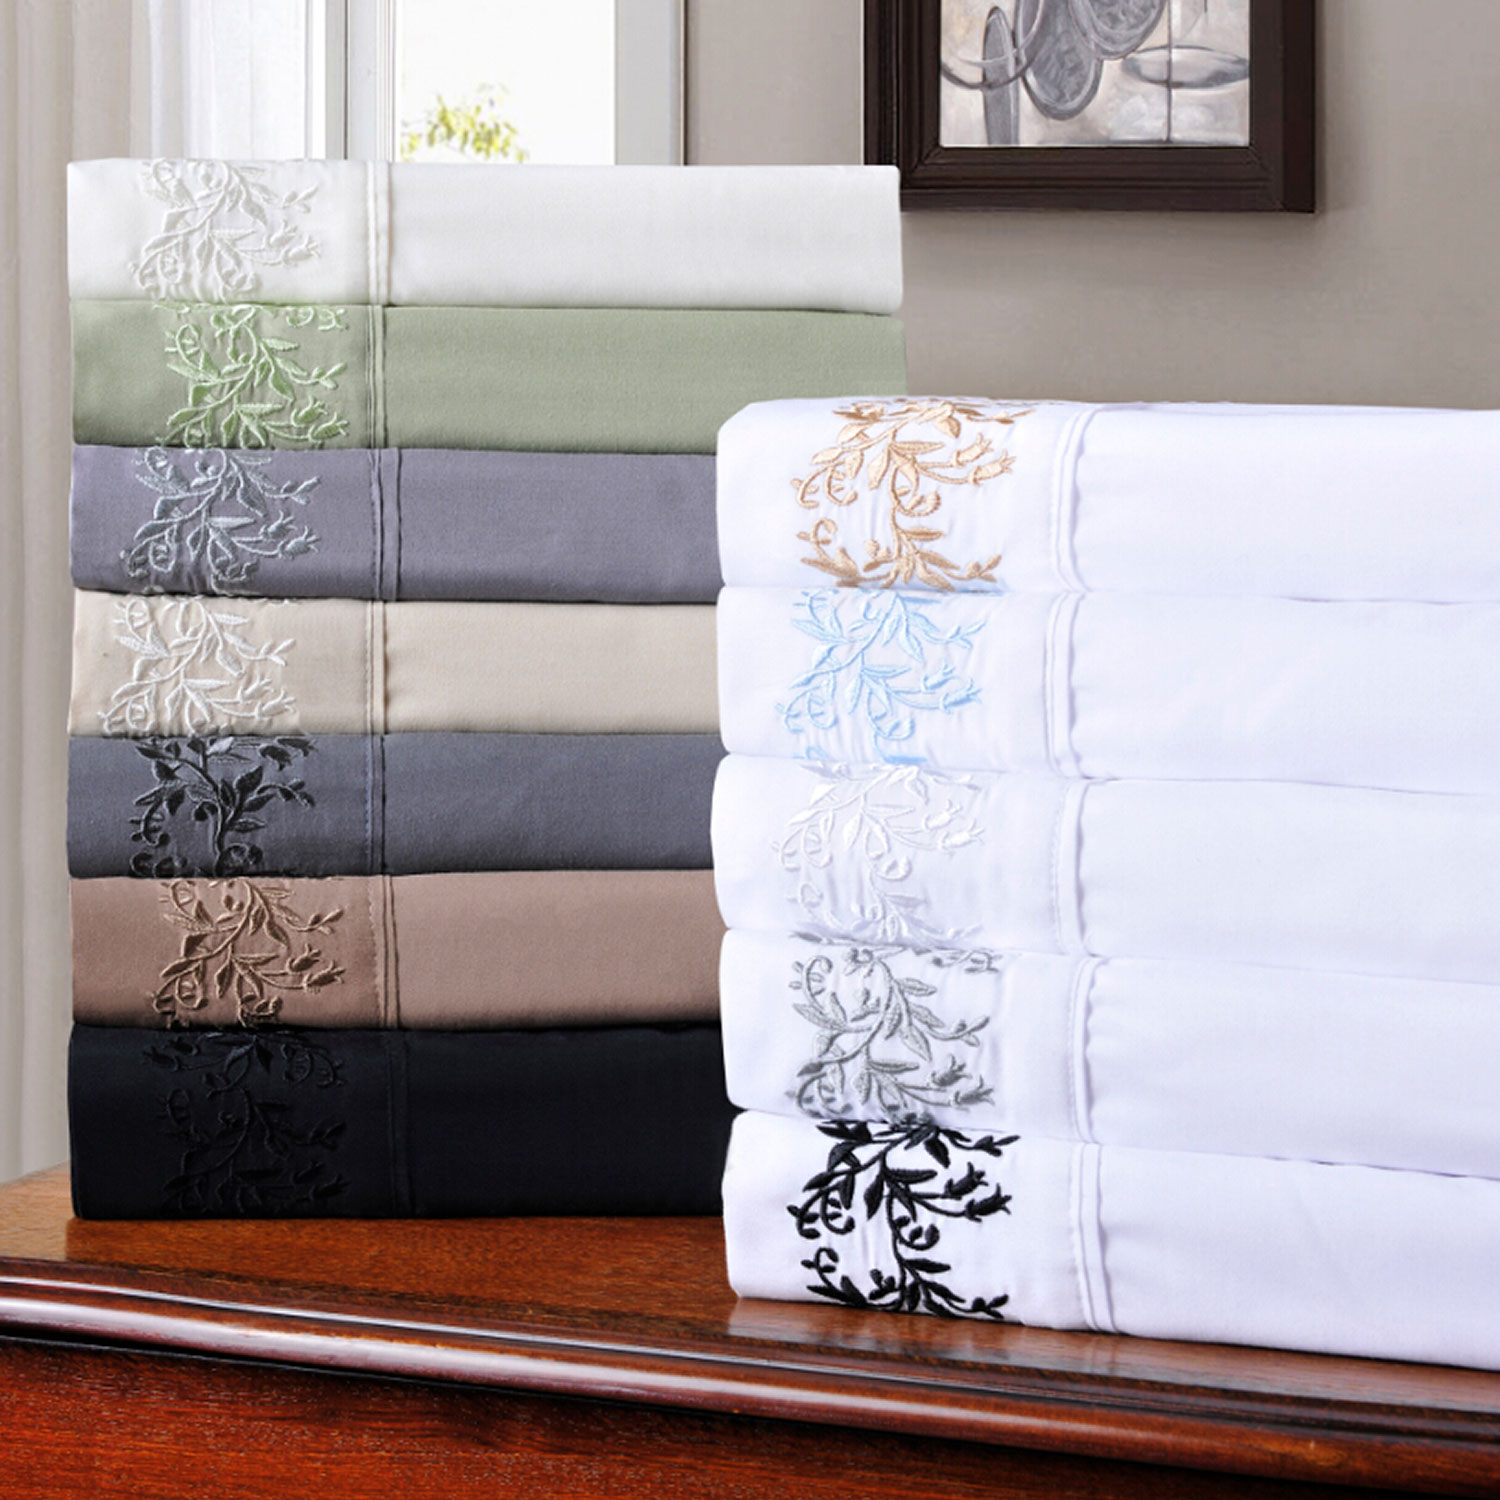 Decorative-Floral-Embroidered-Microfiber-Sheet-Set thumbnail 1